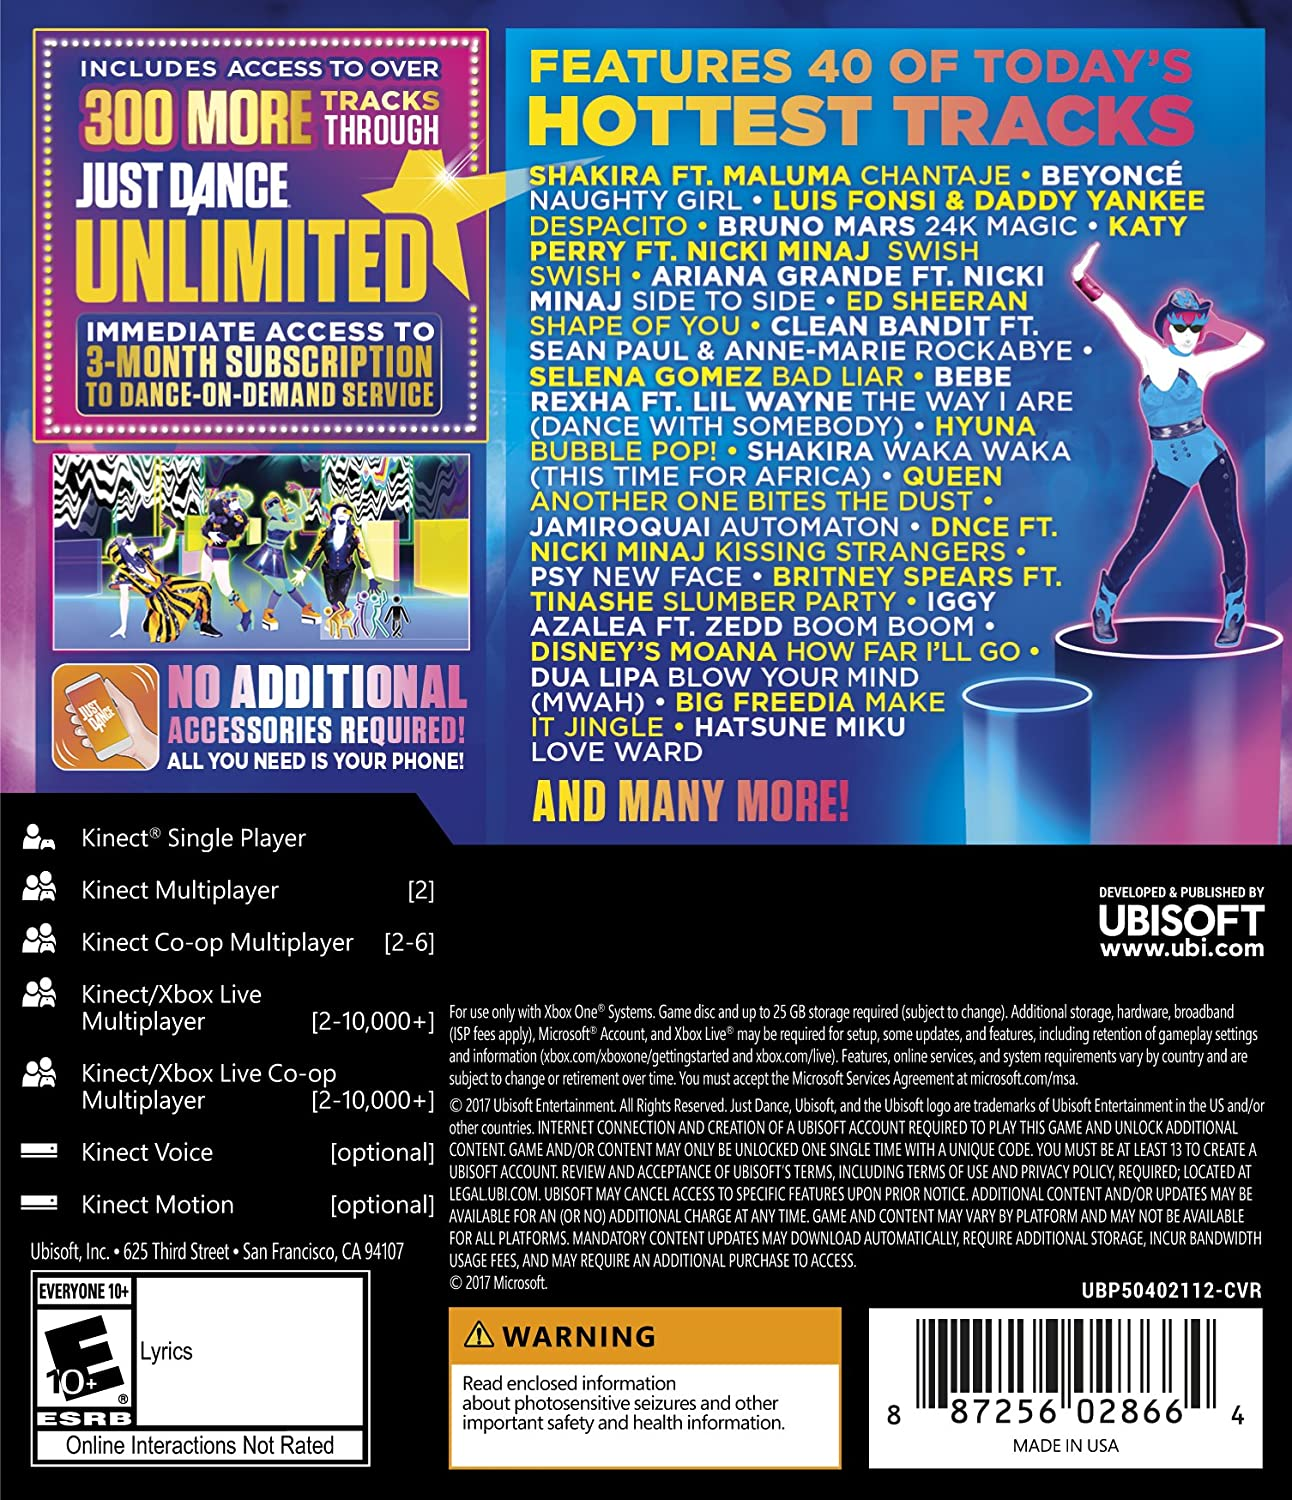 Amazon.com: Just Dance 2018 - Xbox One: Ubisoft: Video Games